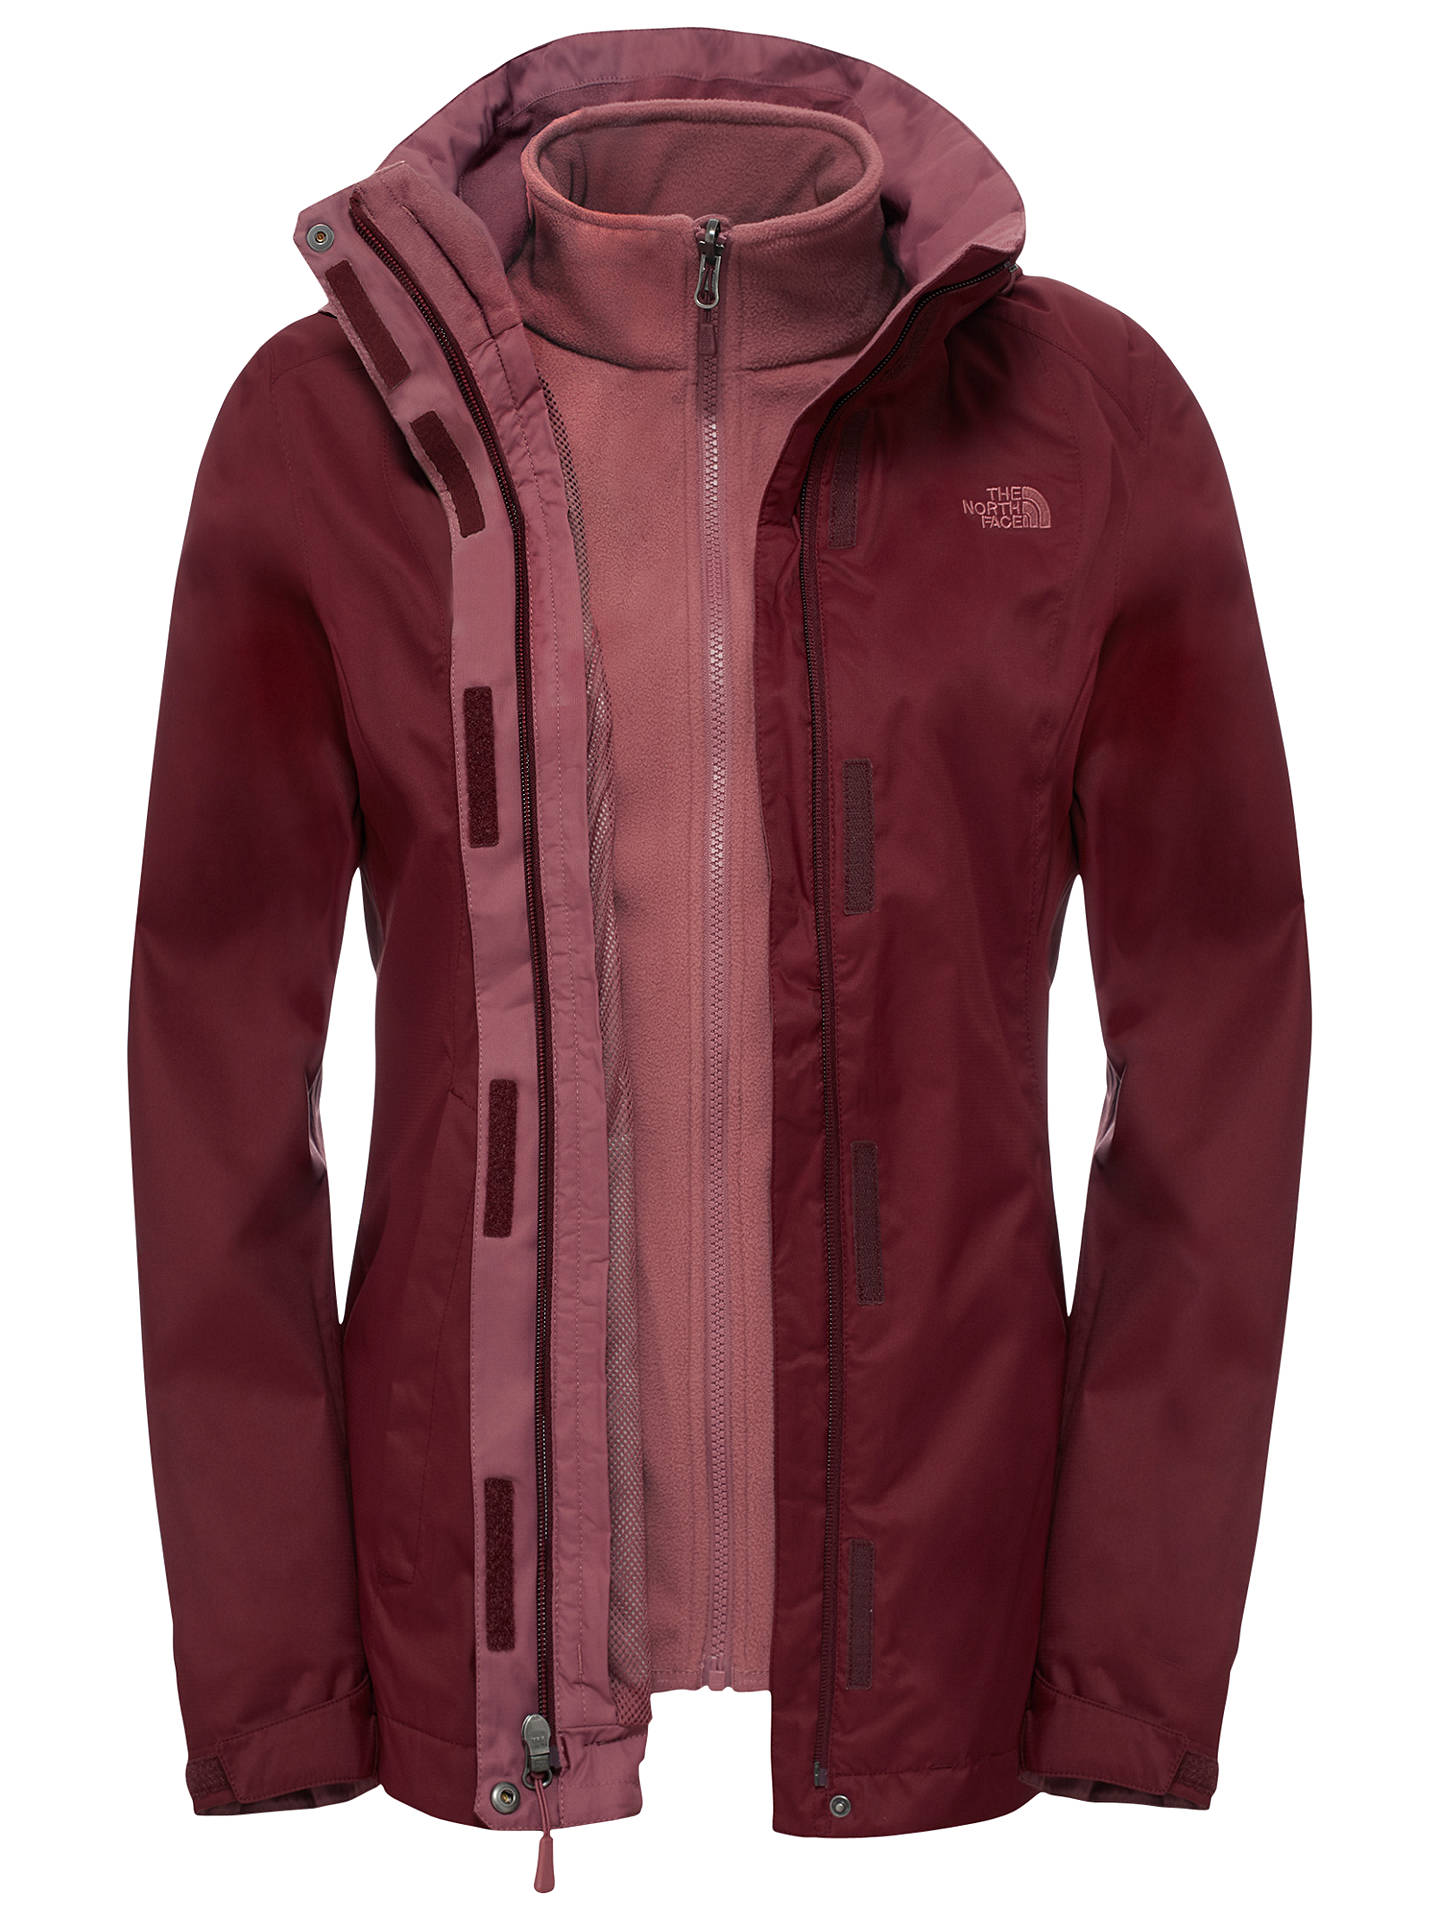 0f82bd38c304 ... spain buythe north face evolve ii triclimate 3 in 1 waterproof womens  jacket red f6420 13fd7